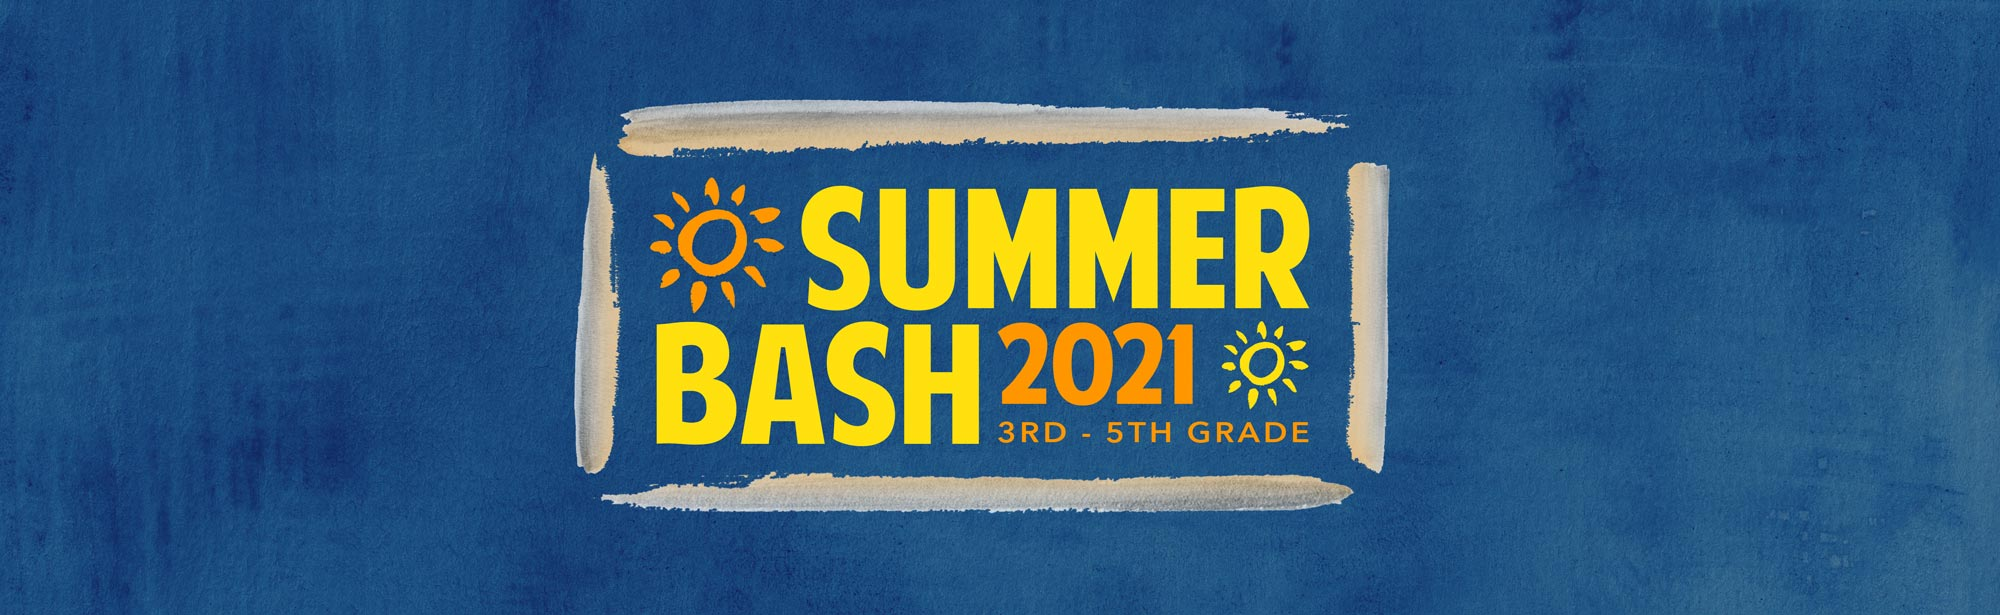 Summer Bash 2021 - Revolve Camp - 3rd - 5th Grade